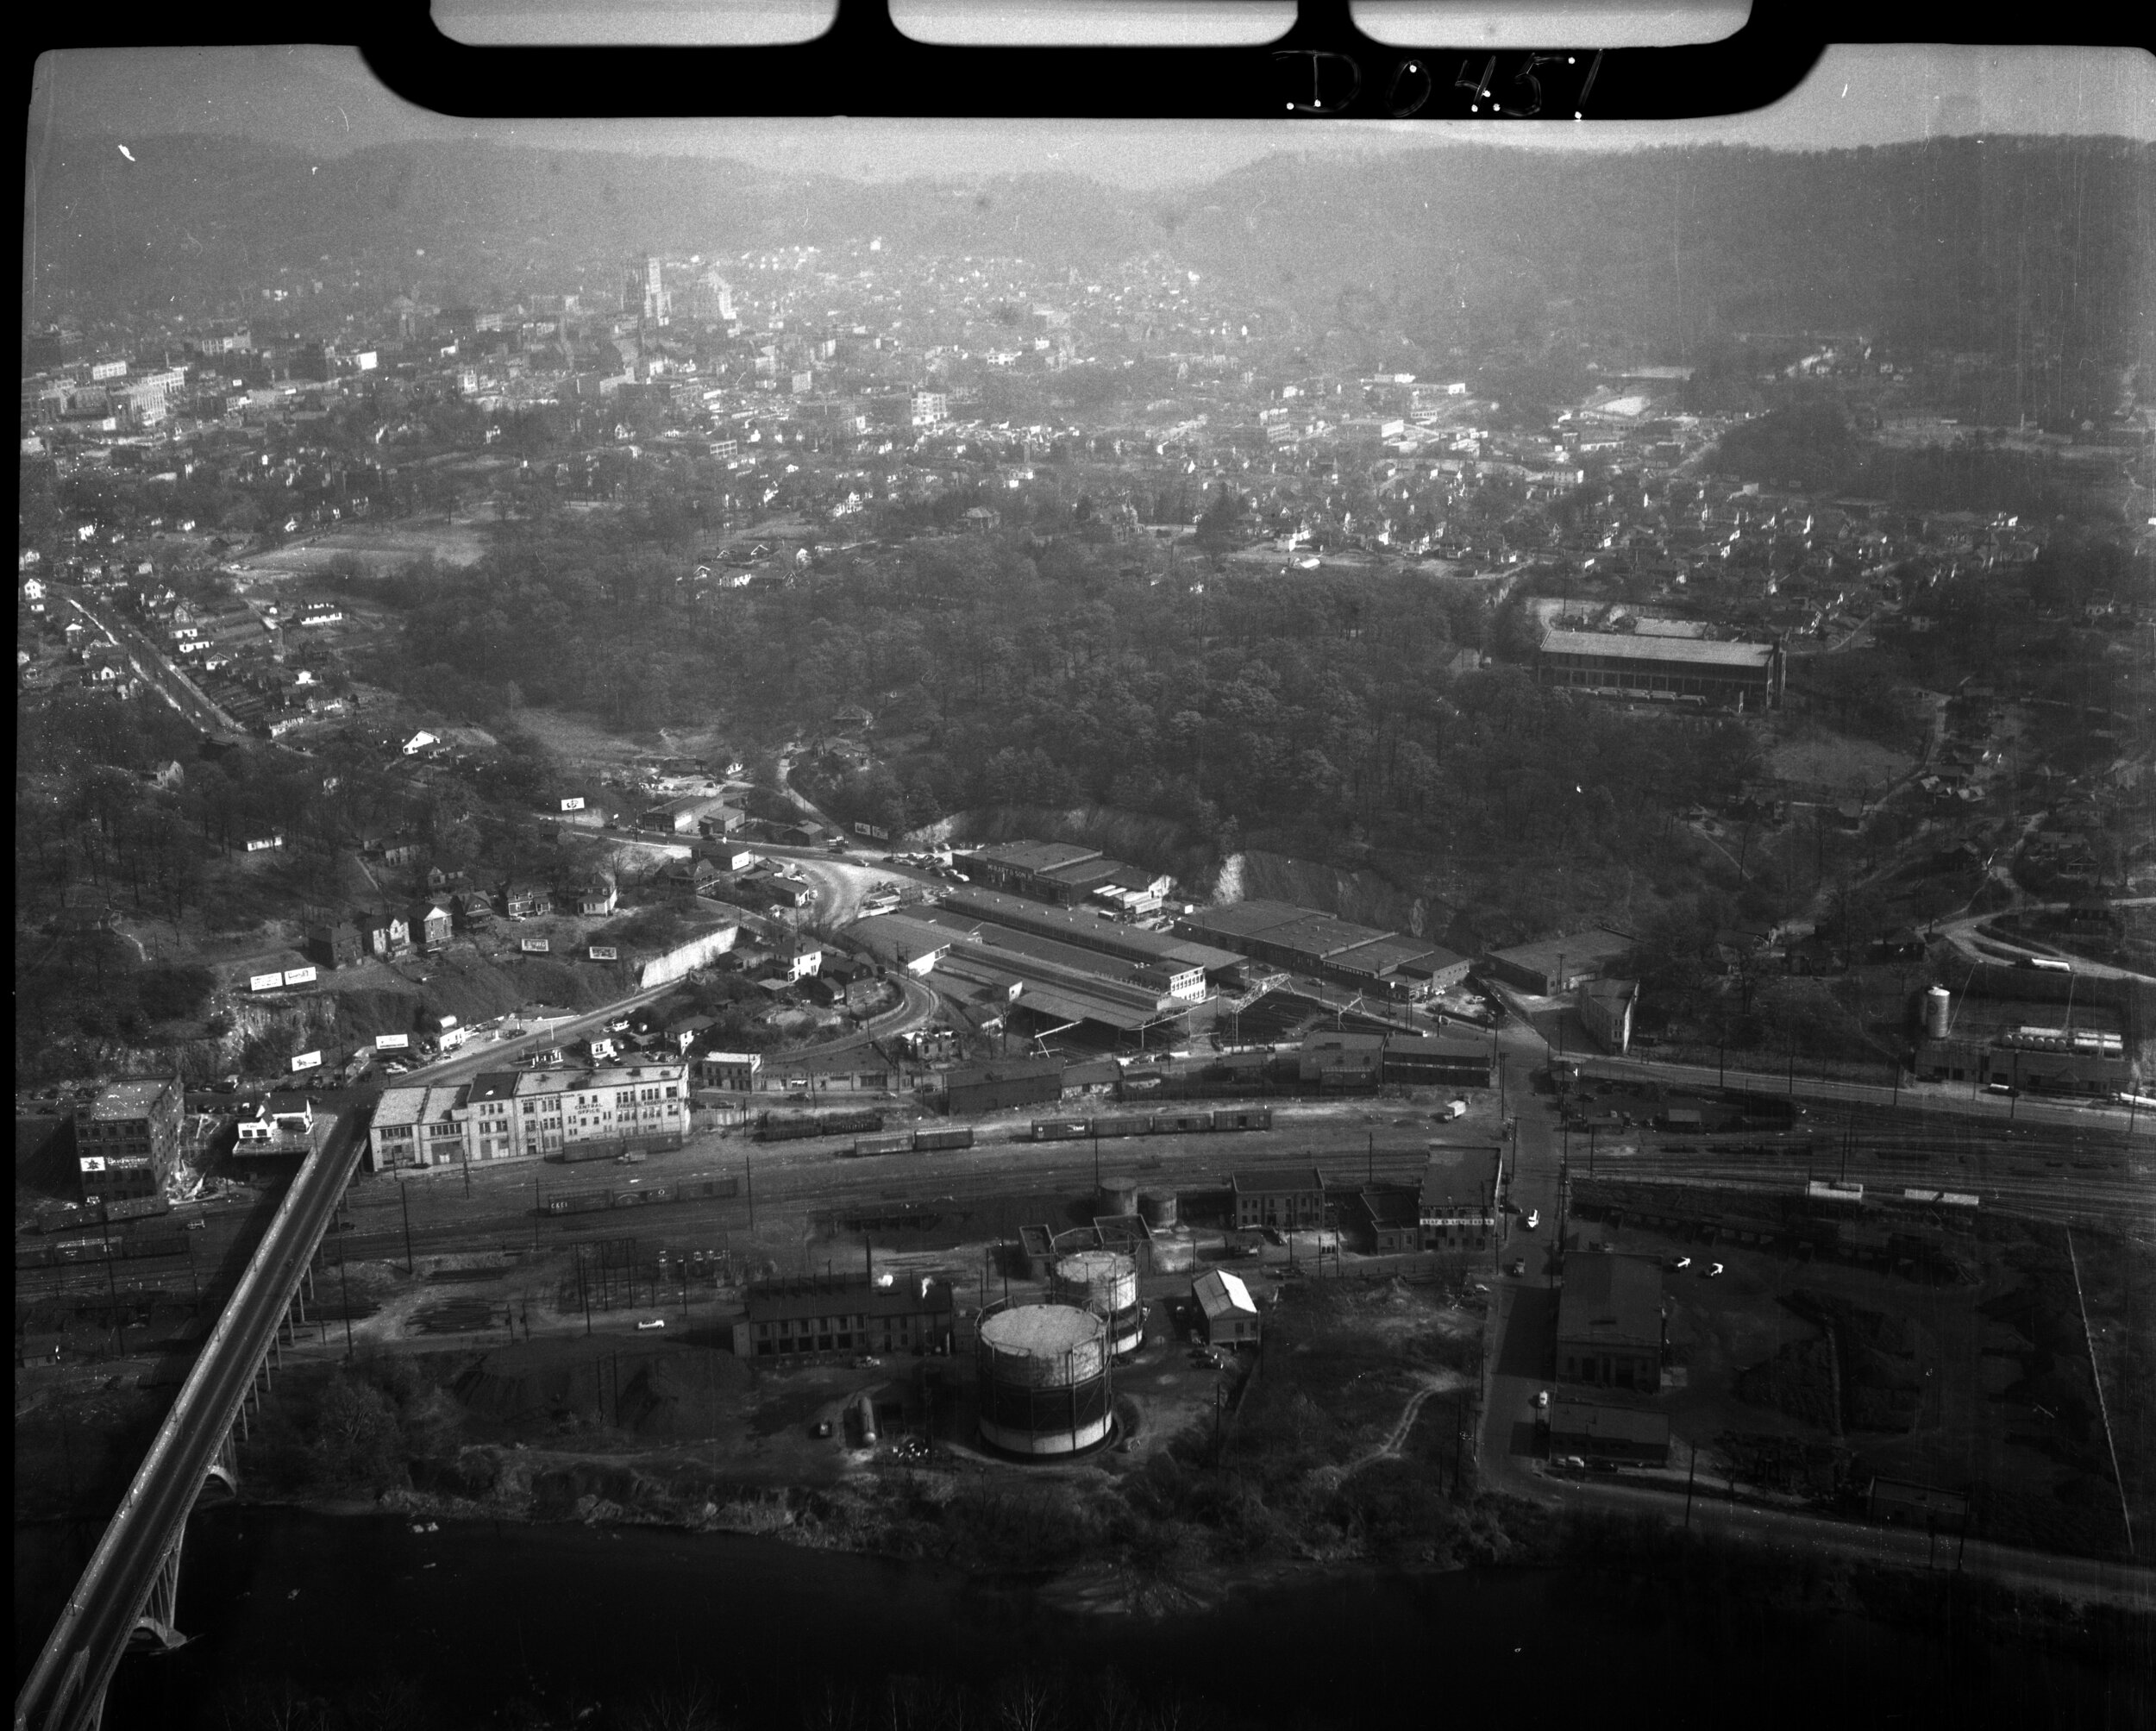 Aerial photo of the City of Asheville with CURVE Studios in the foreground. Taken in the 1950s by Samuel A. Bingham Jr.